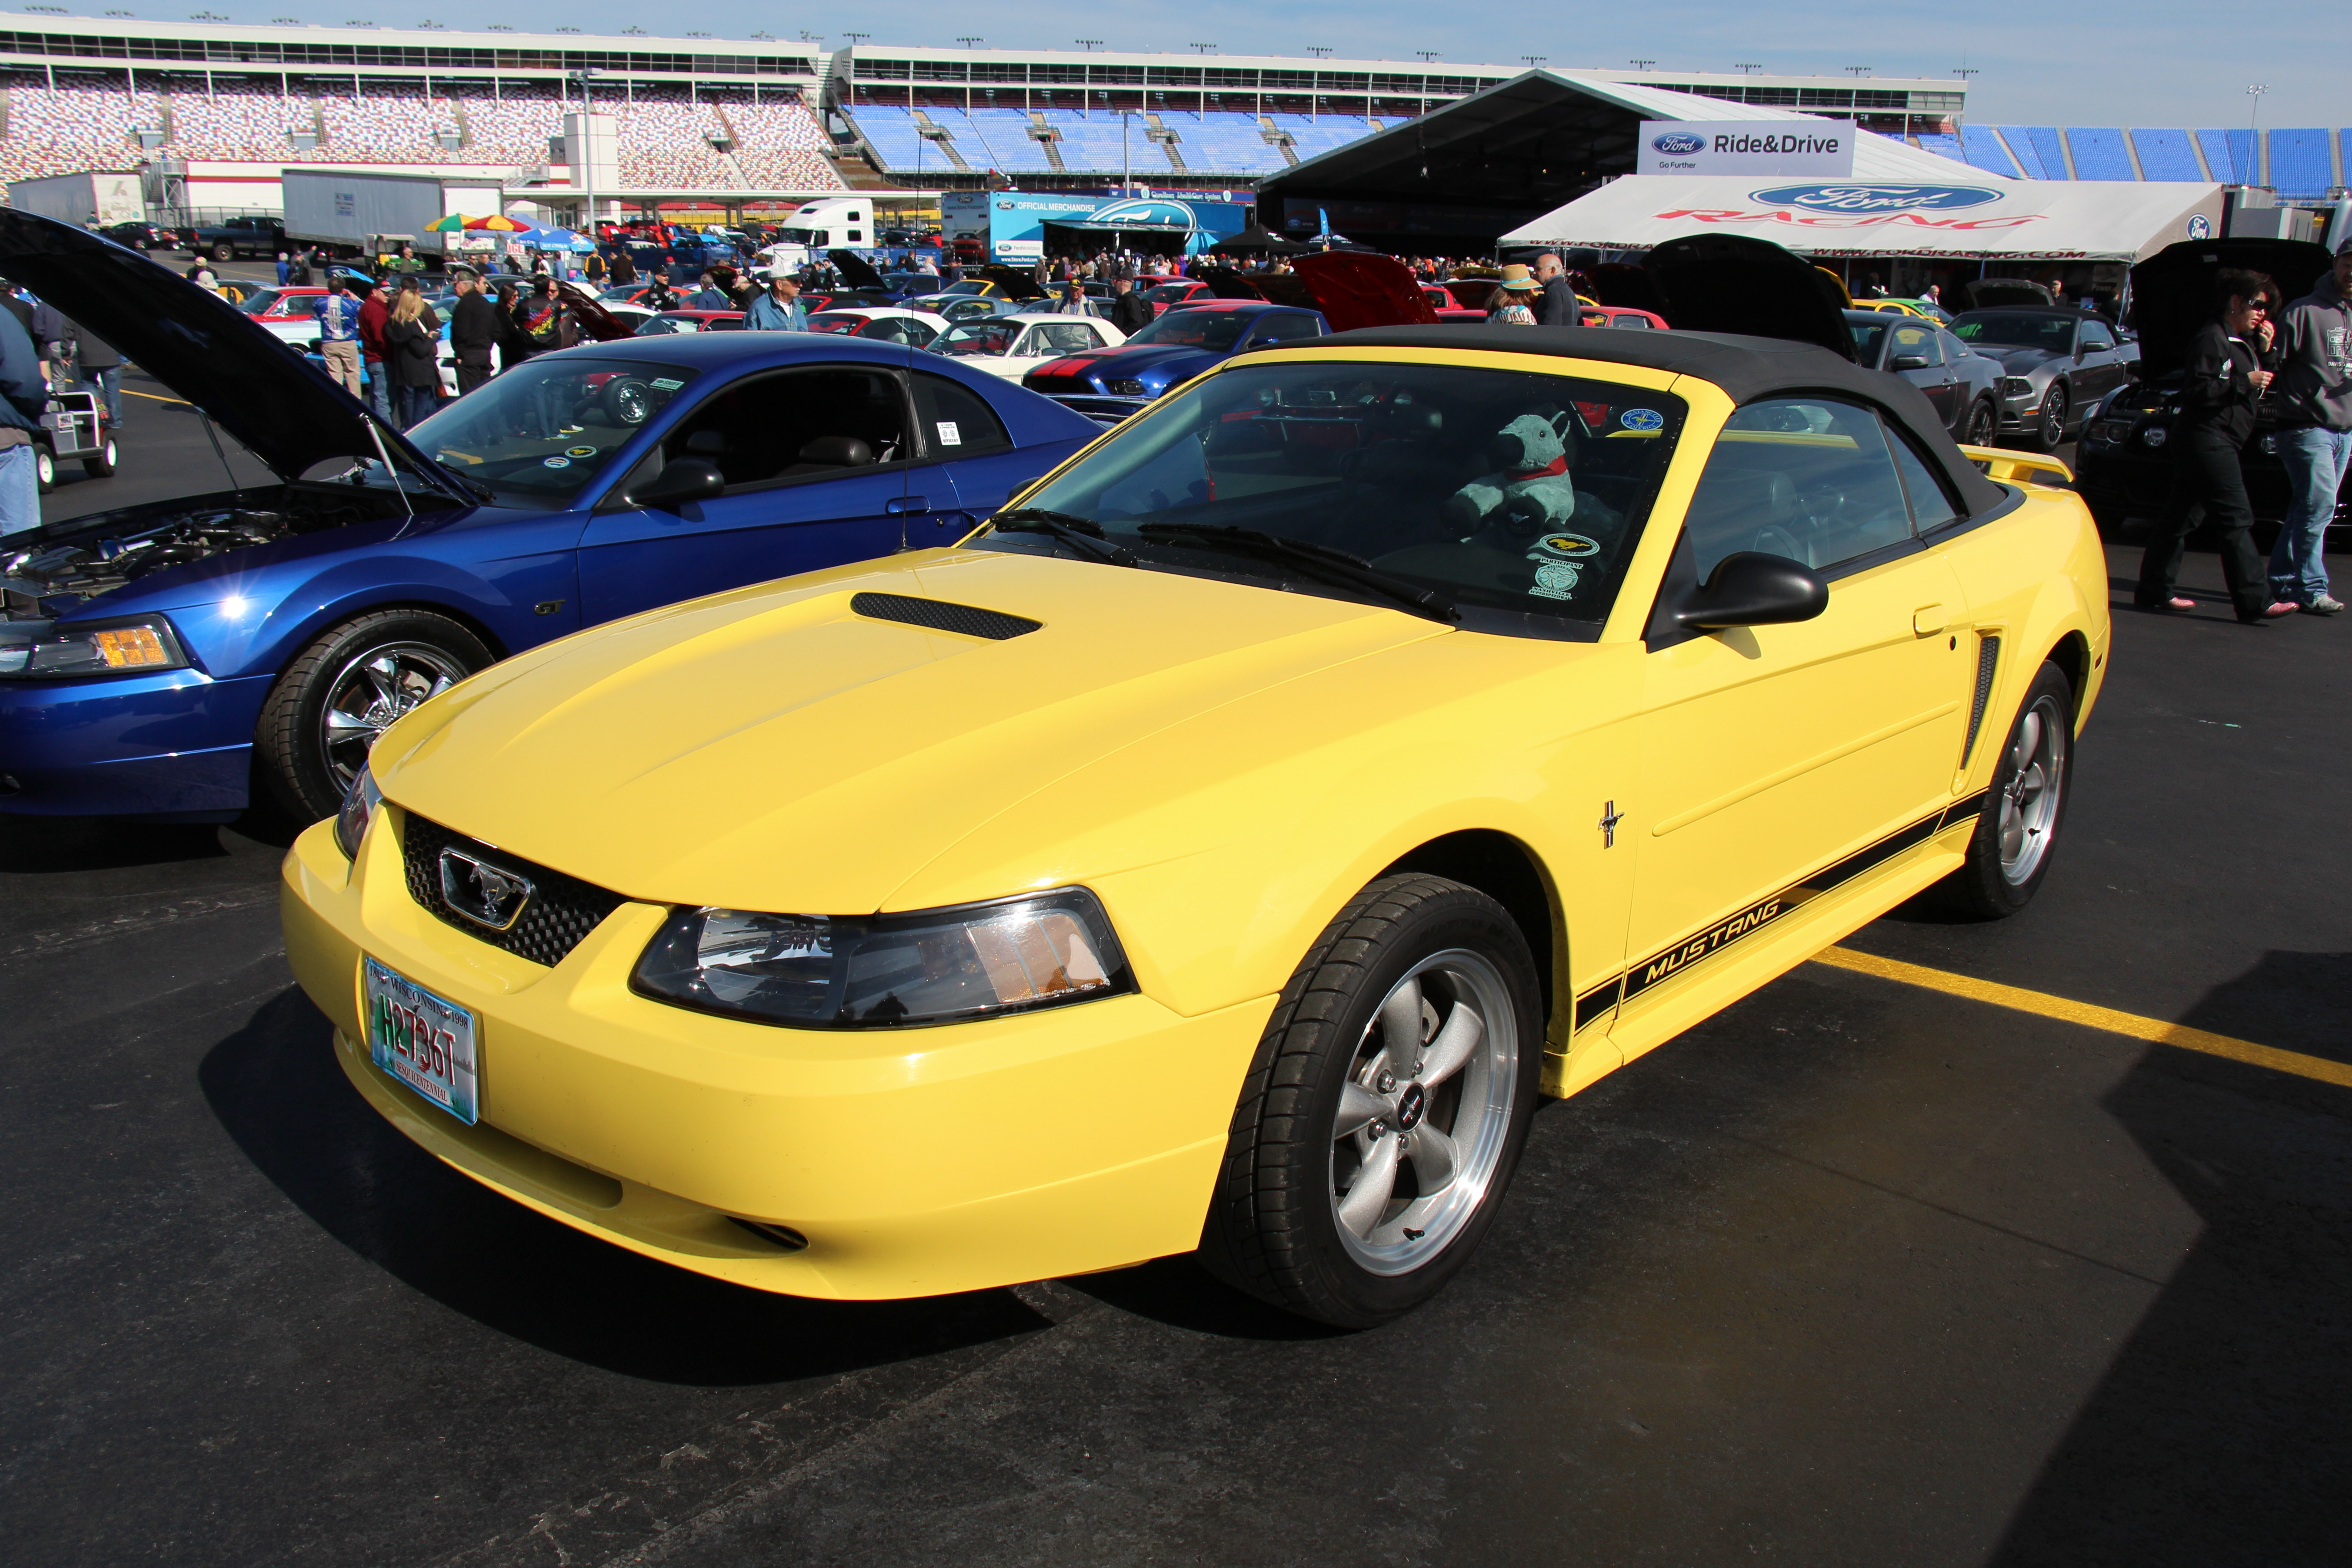 File:2000 Ford Mustang V6 Convertible (14420770072).jpg - Wikimedia Commons